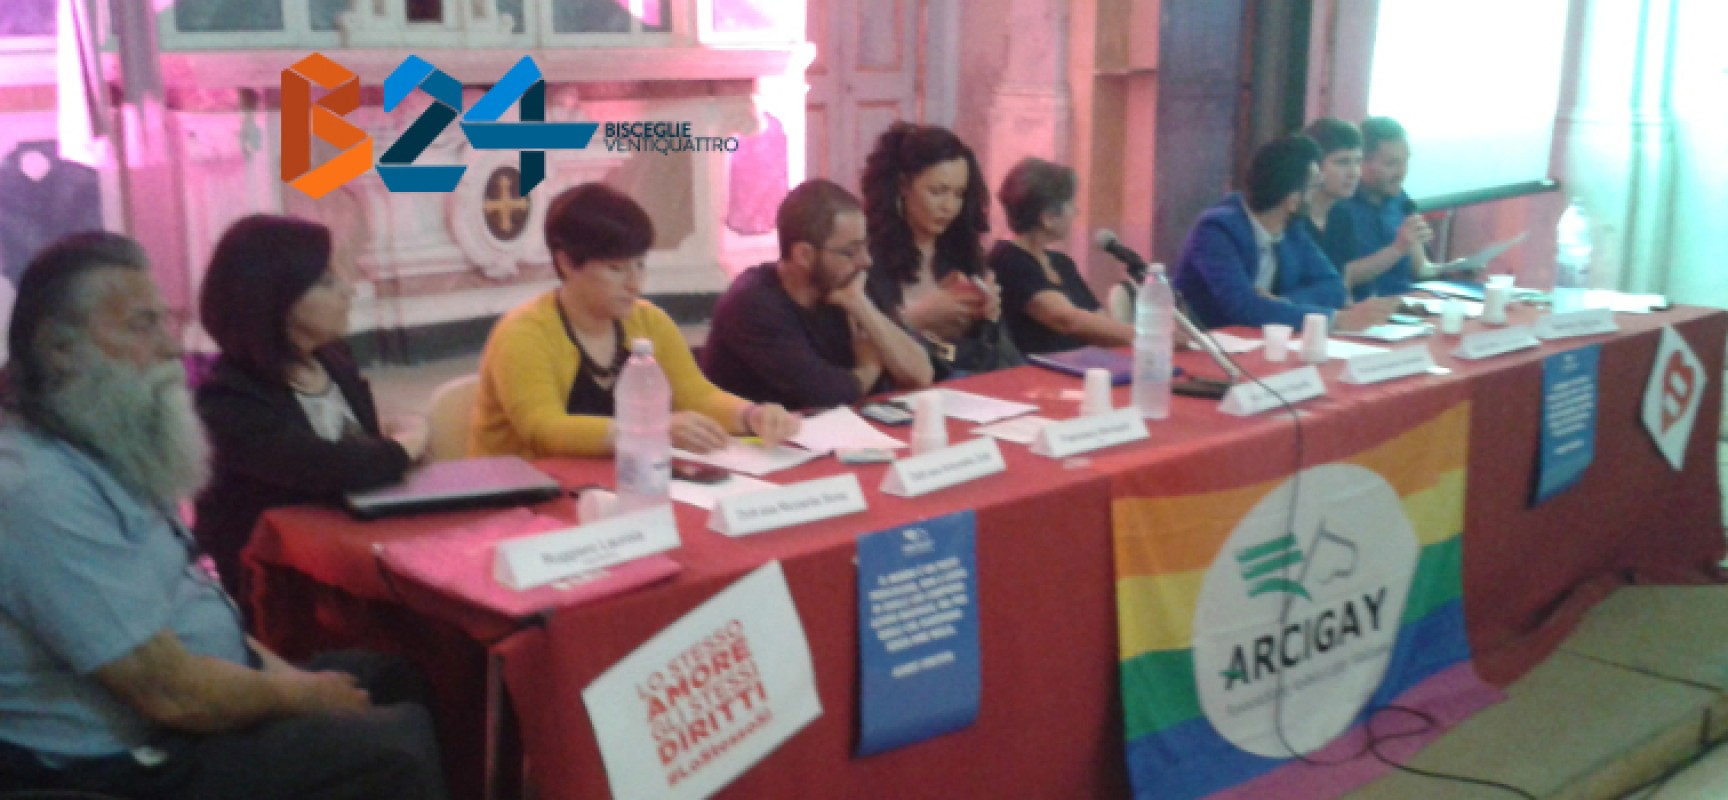 """Arcigay Bat, """"Be different without difference"""": educare alle differenze per cancellare l'omofobia"""